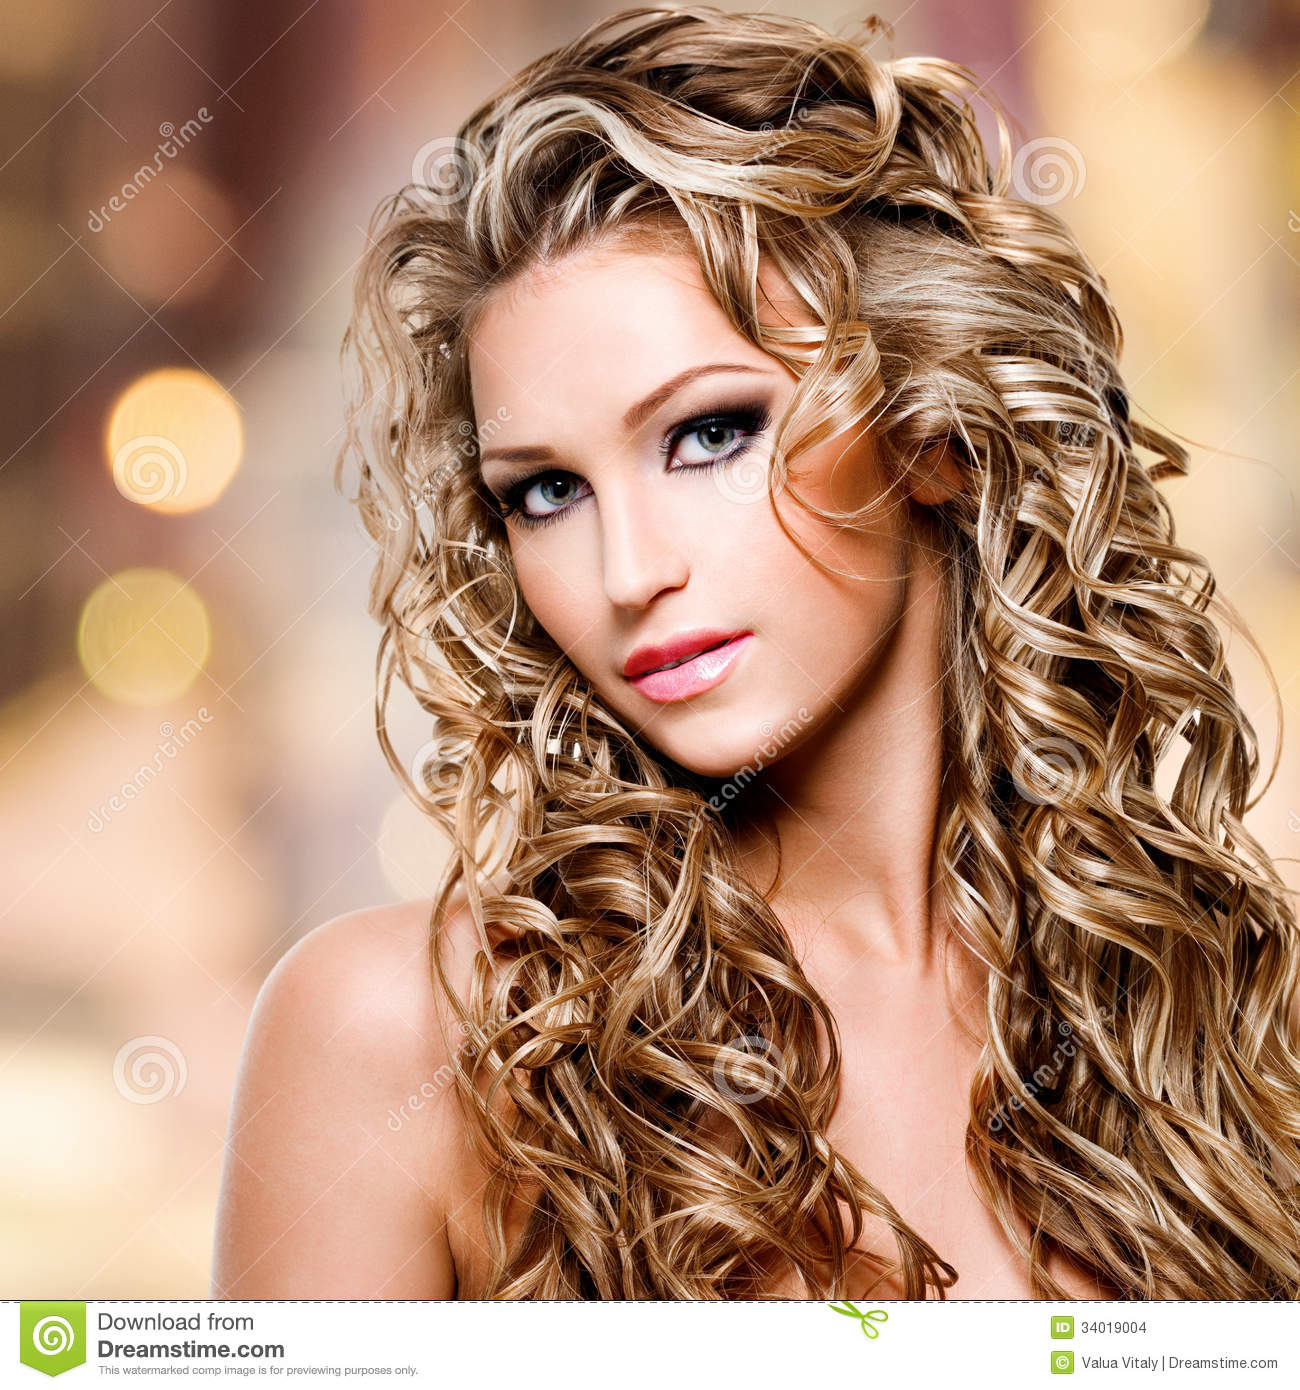 Enjoyable Beautiful Woman With Long Curly Hairstyle Stock Images Image Short Hairstyles For Black Women Fulllsitofus